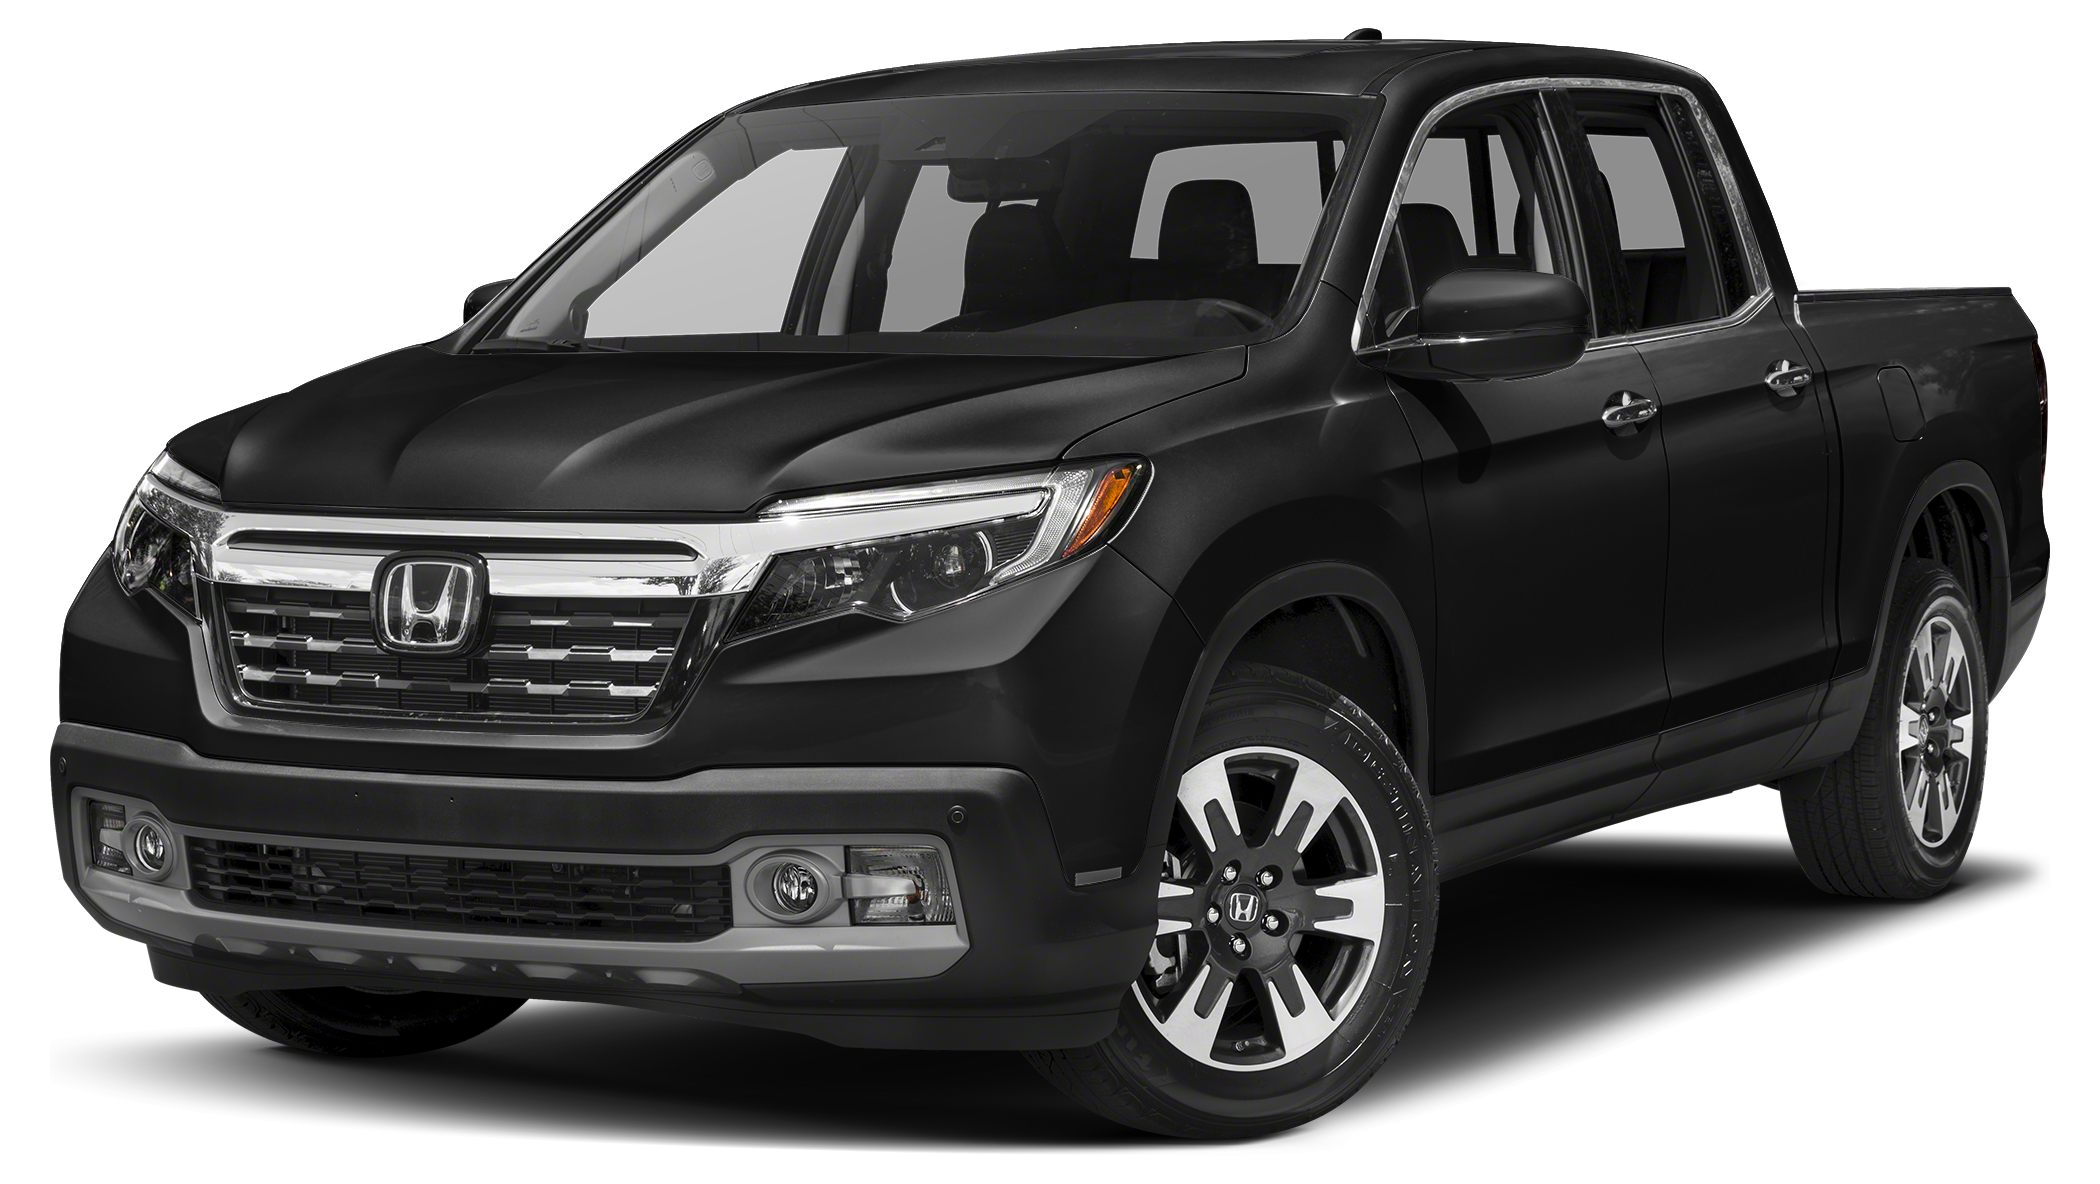 2017 Honda Ridgeline RTL-T Your mileage will vary depending on driving conditions how you drive a